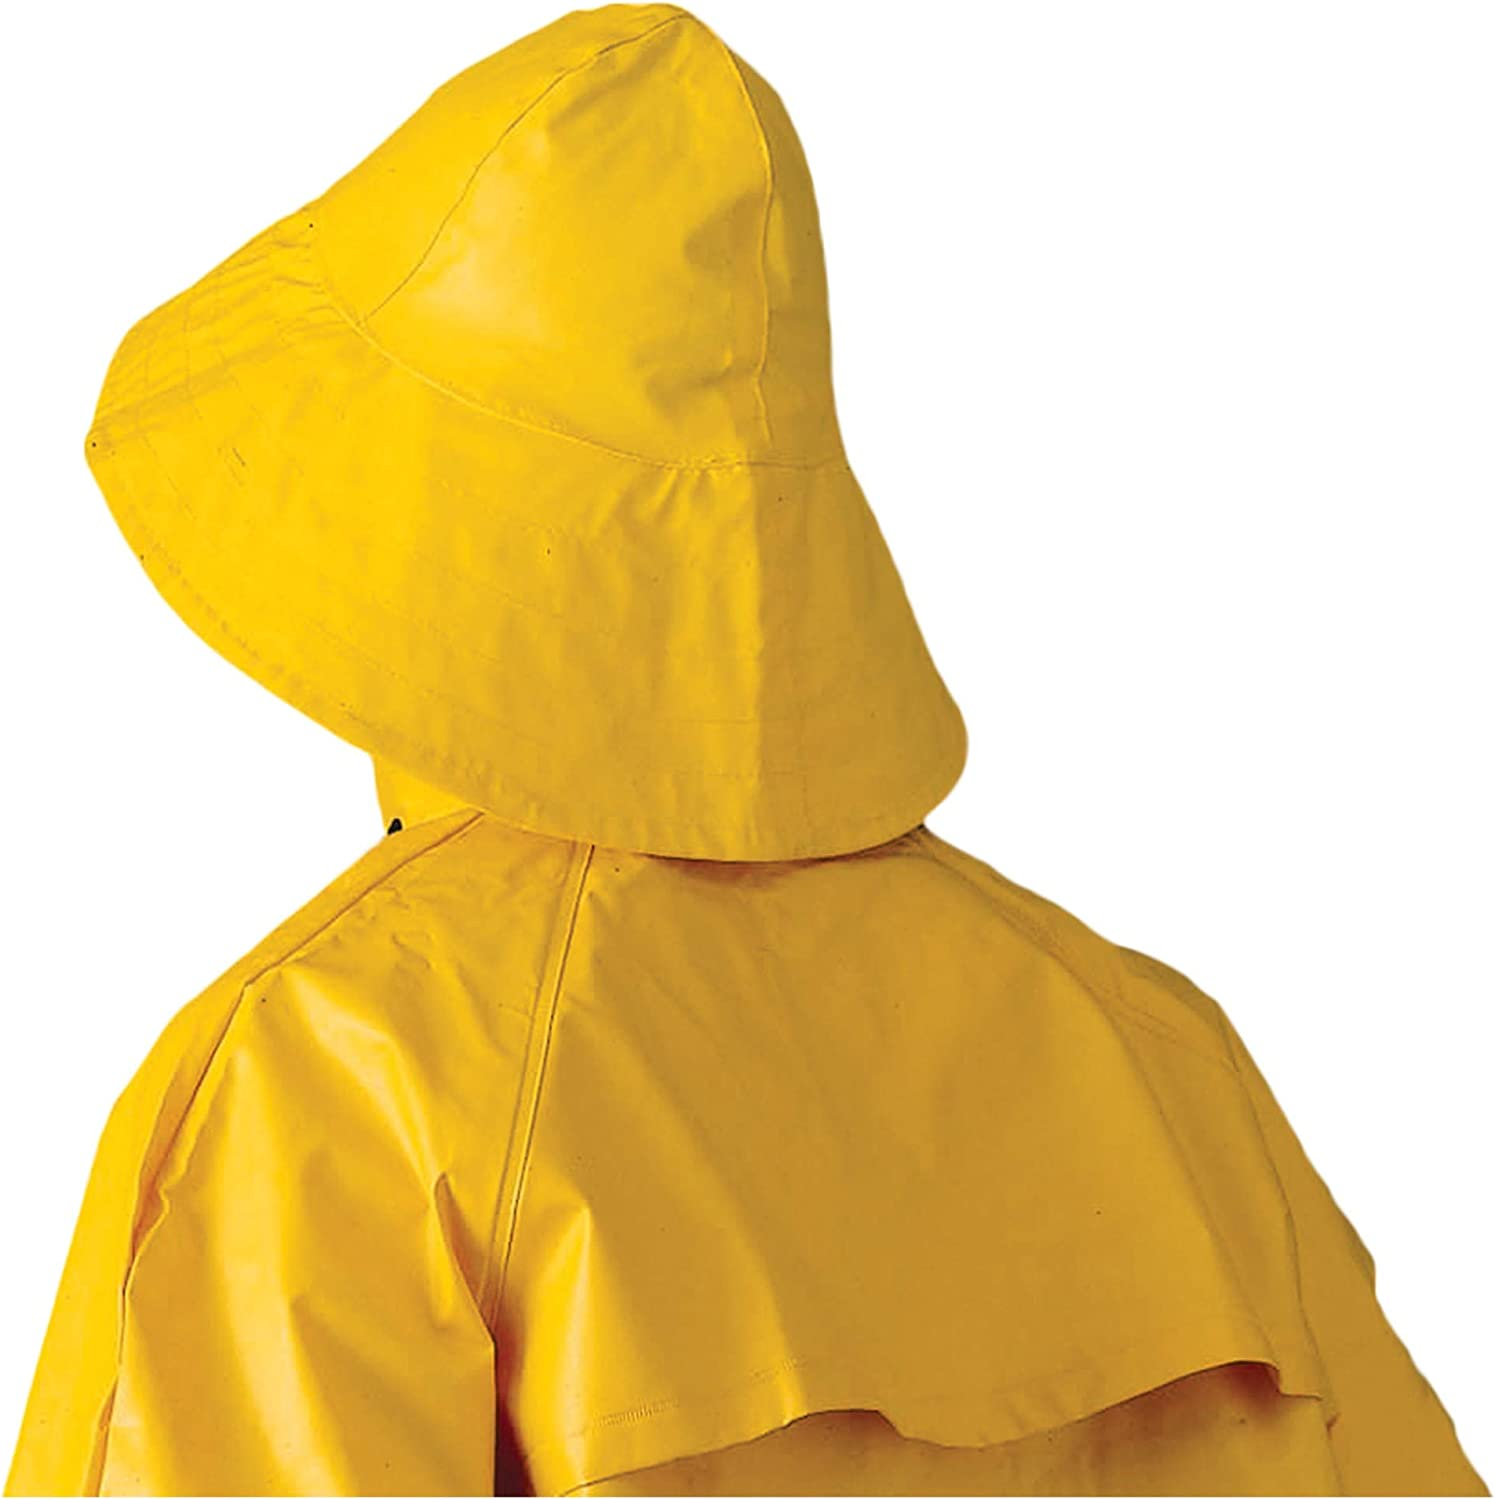 RAIN SLICKER Yellow Full Length with Cut Out Back to Protect Saddle